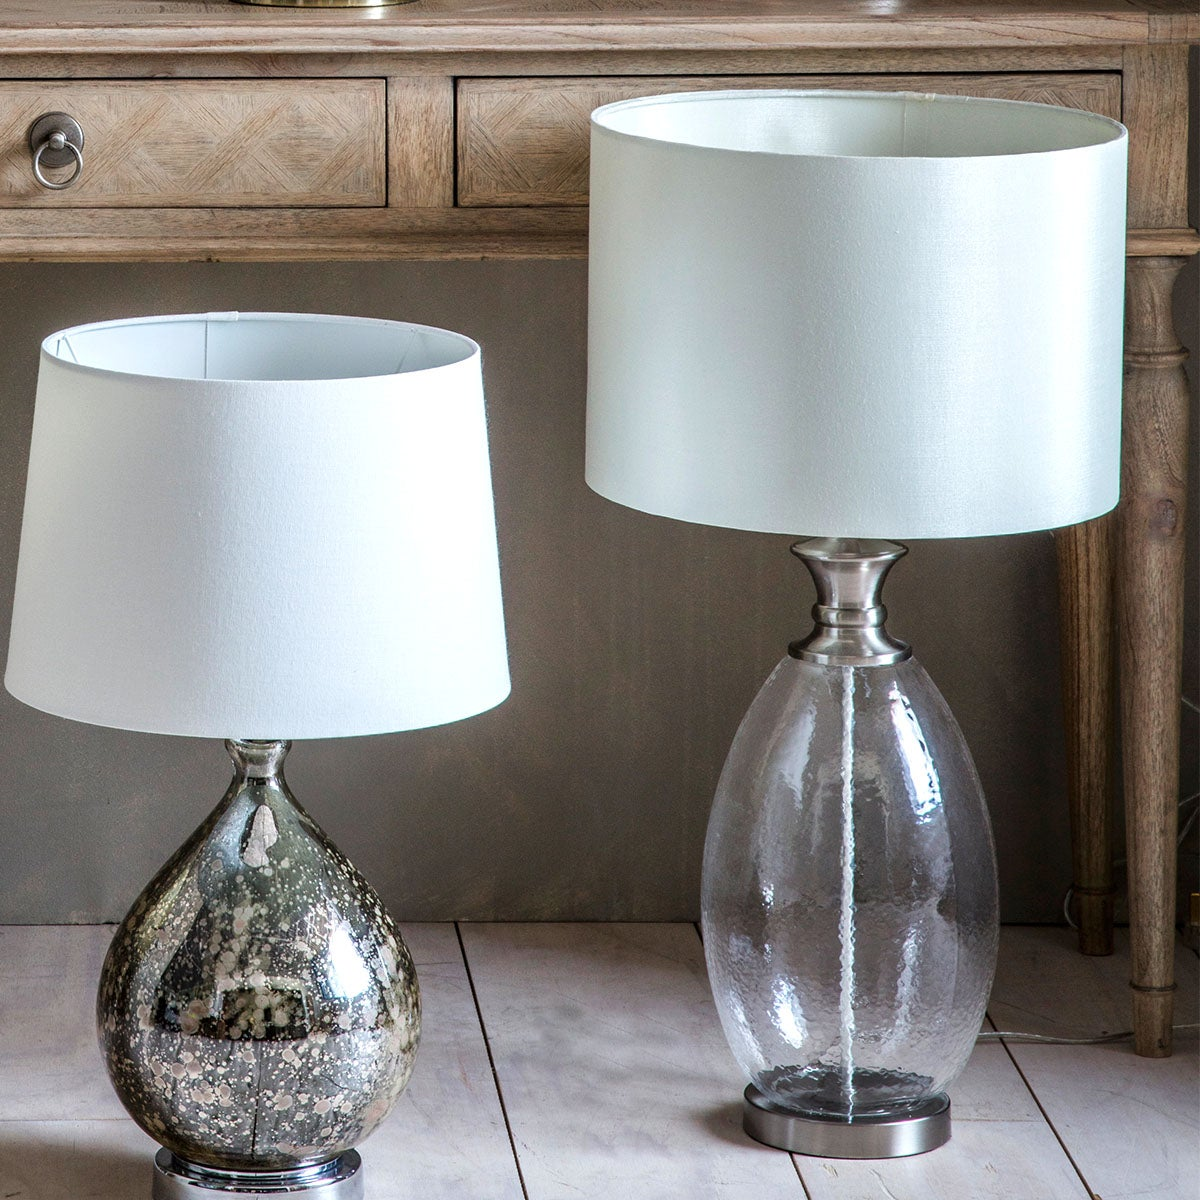 Dunelm Gallery Direct Sulgrave Table Lamp Clear and White